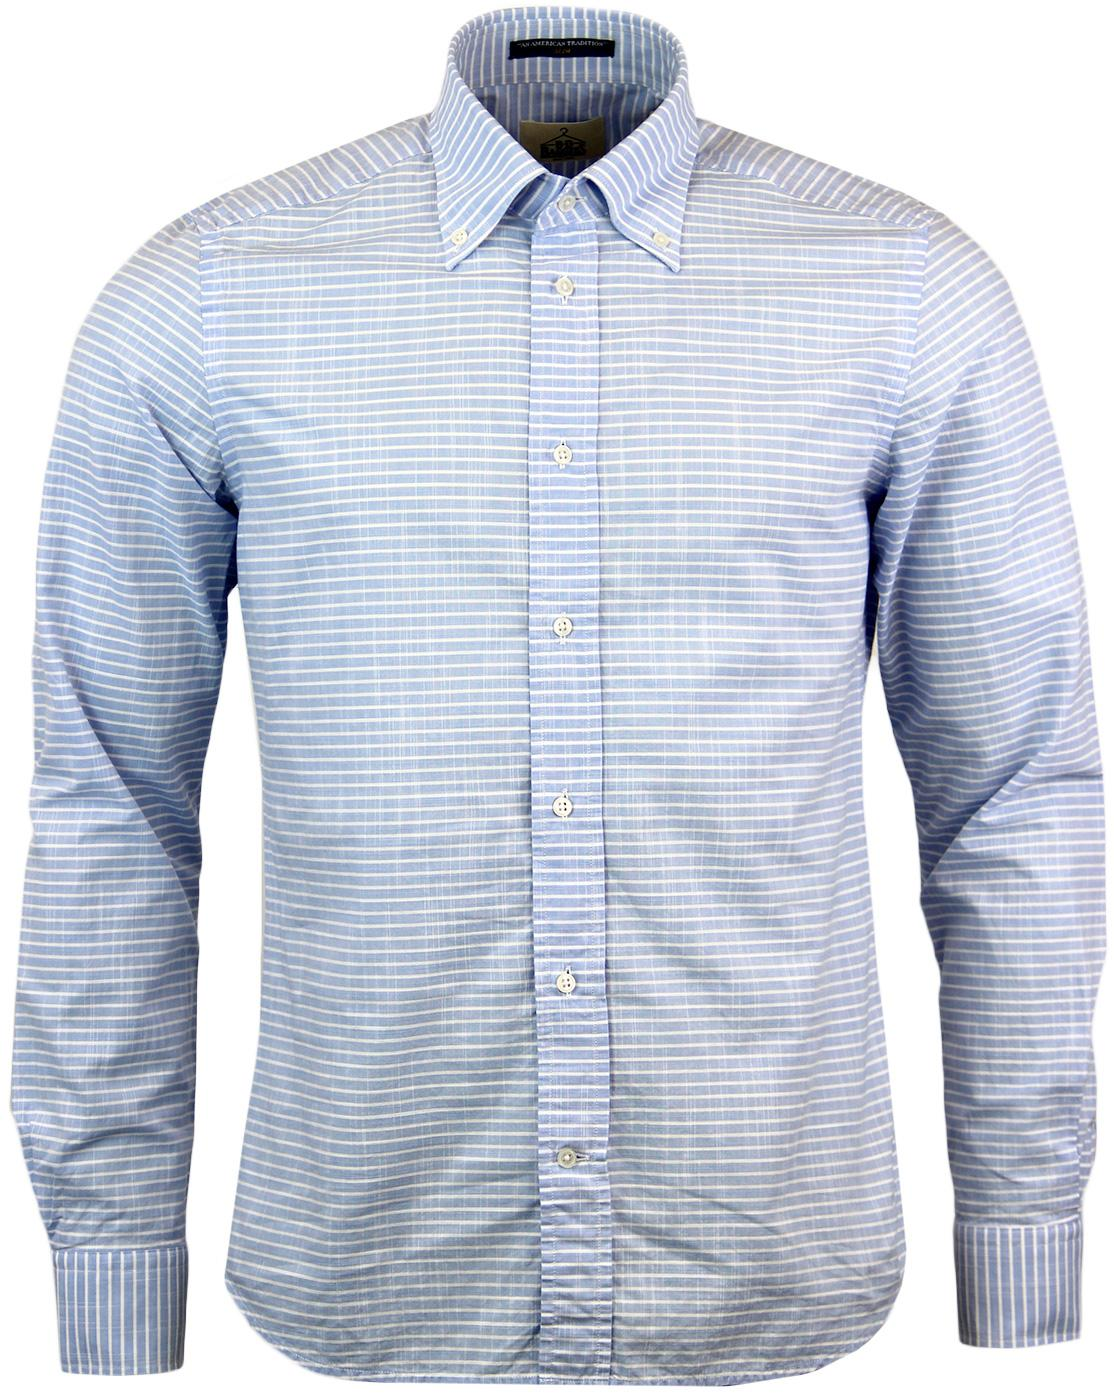 Dexter B D BAGGIES Retro Mod 60s Striped Shirt